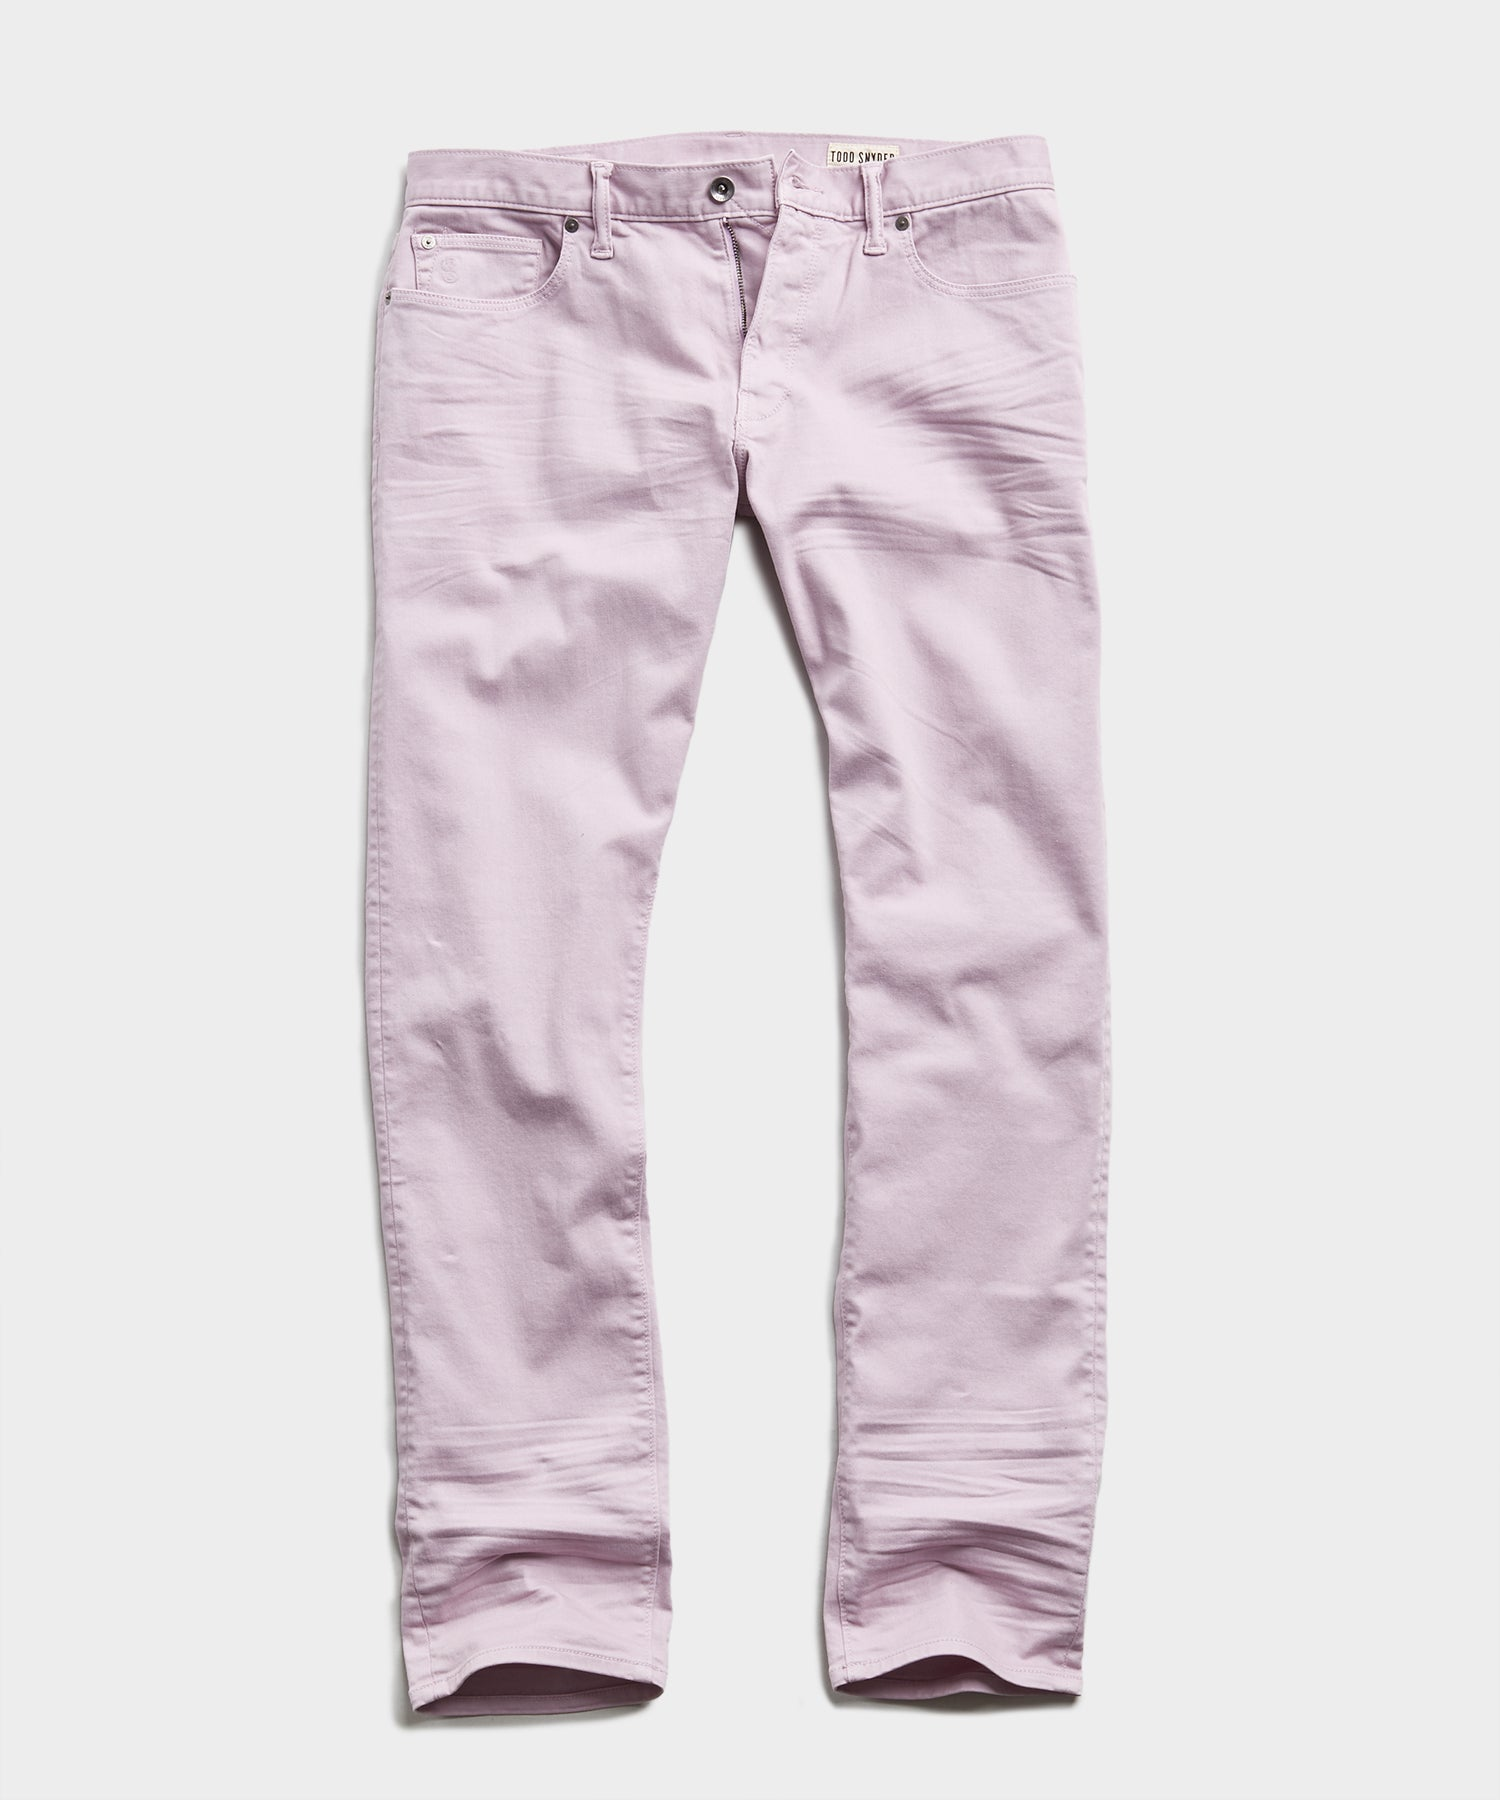 Slim Fit 5-Pocket Garment-Dyed Stretch Twill in Lavender